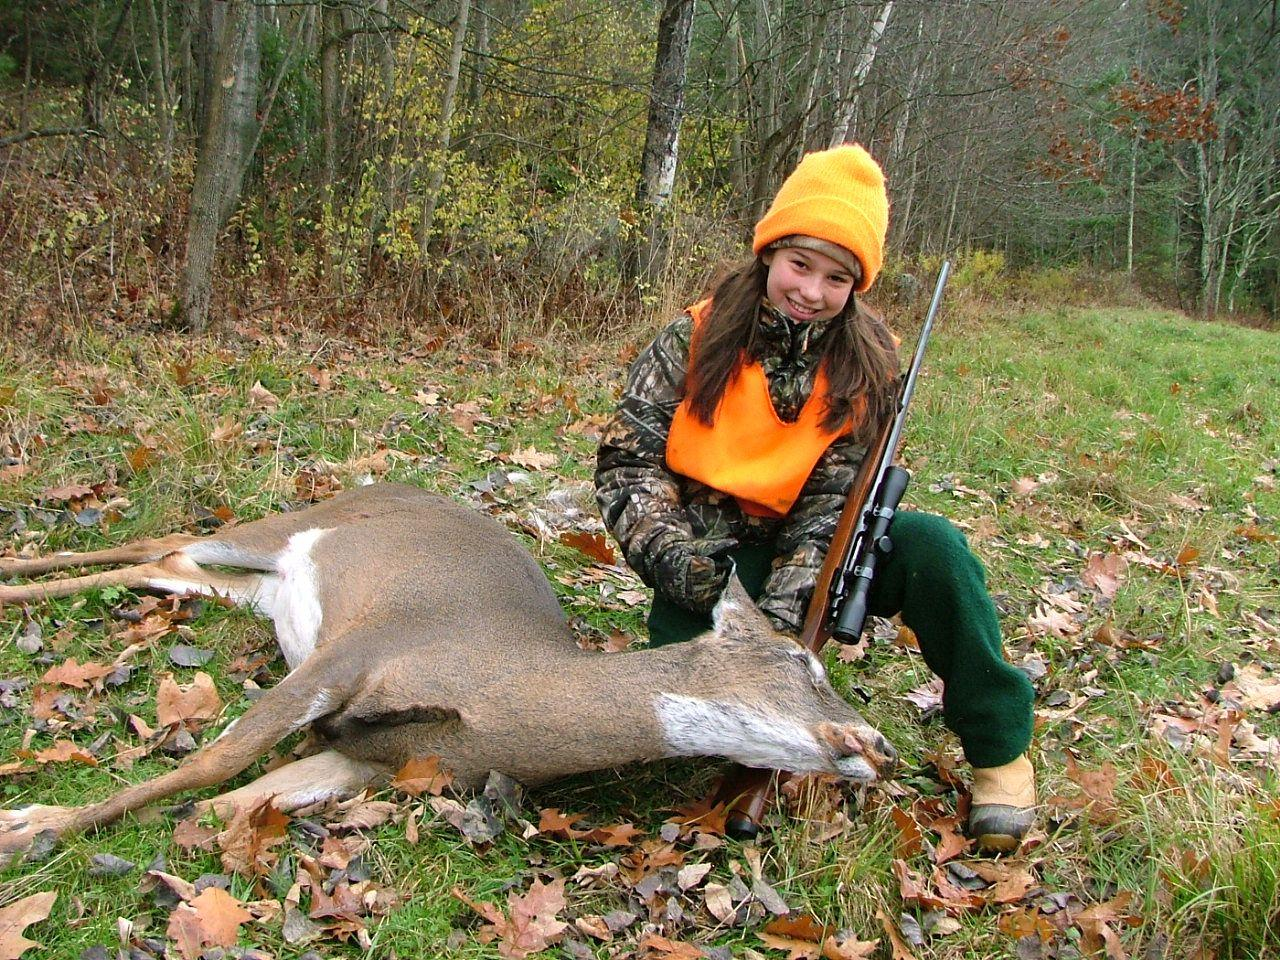 Youth deer weekend gives vermont kids a first shot at